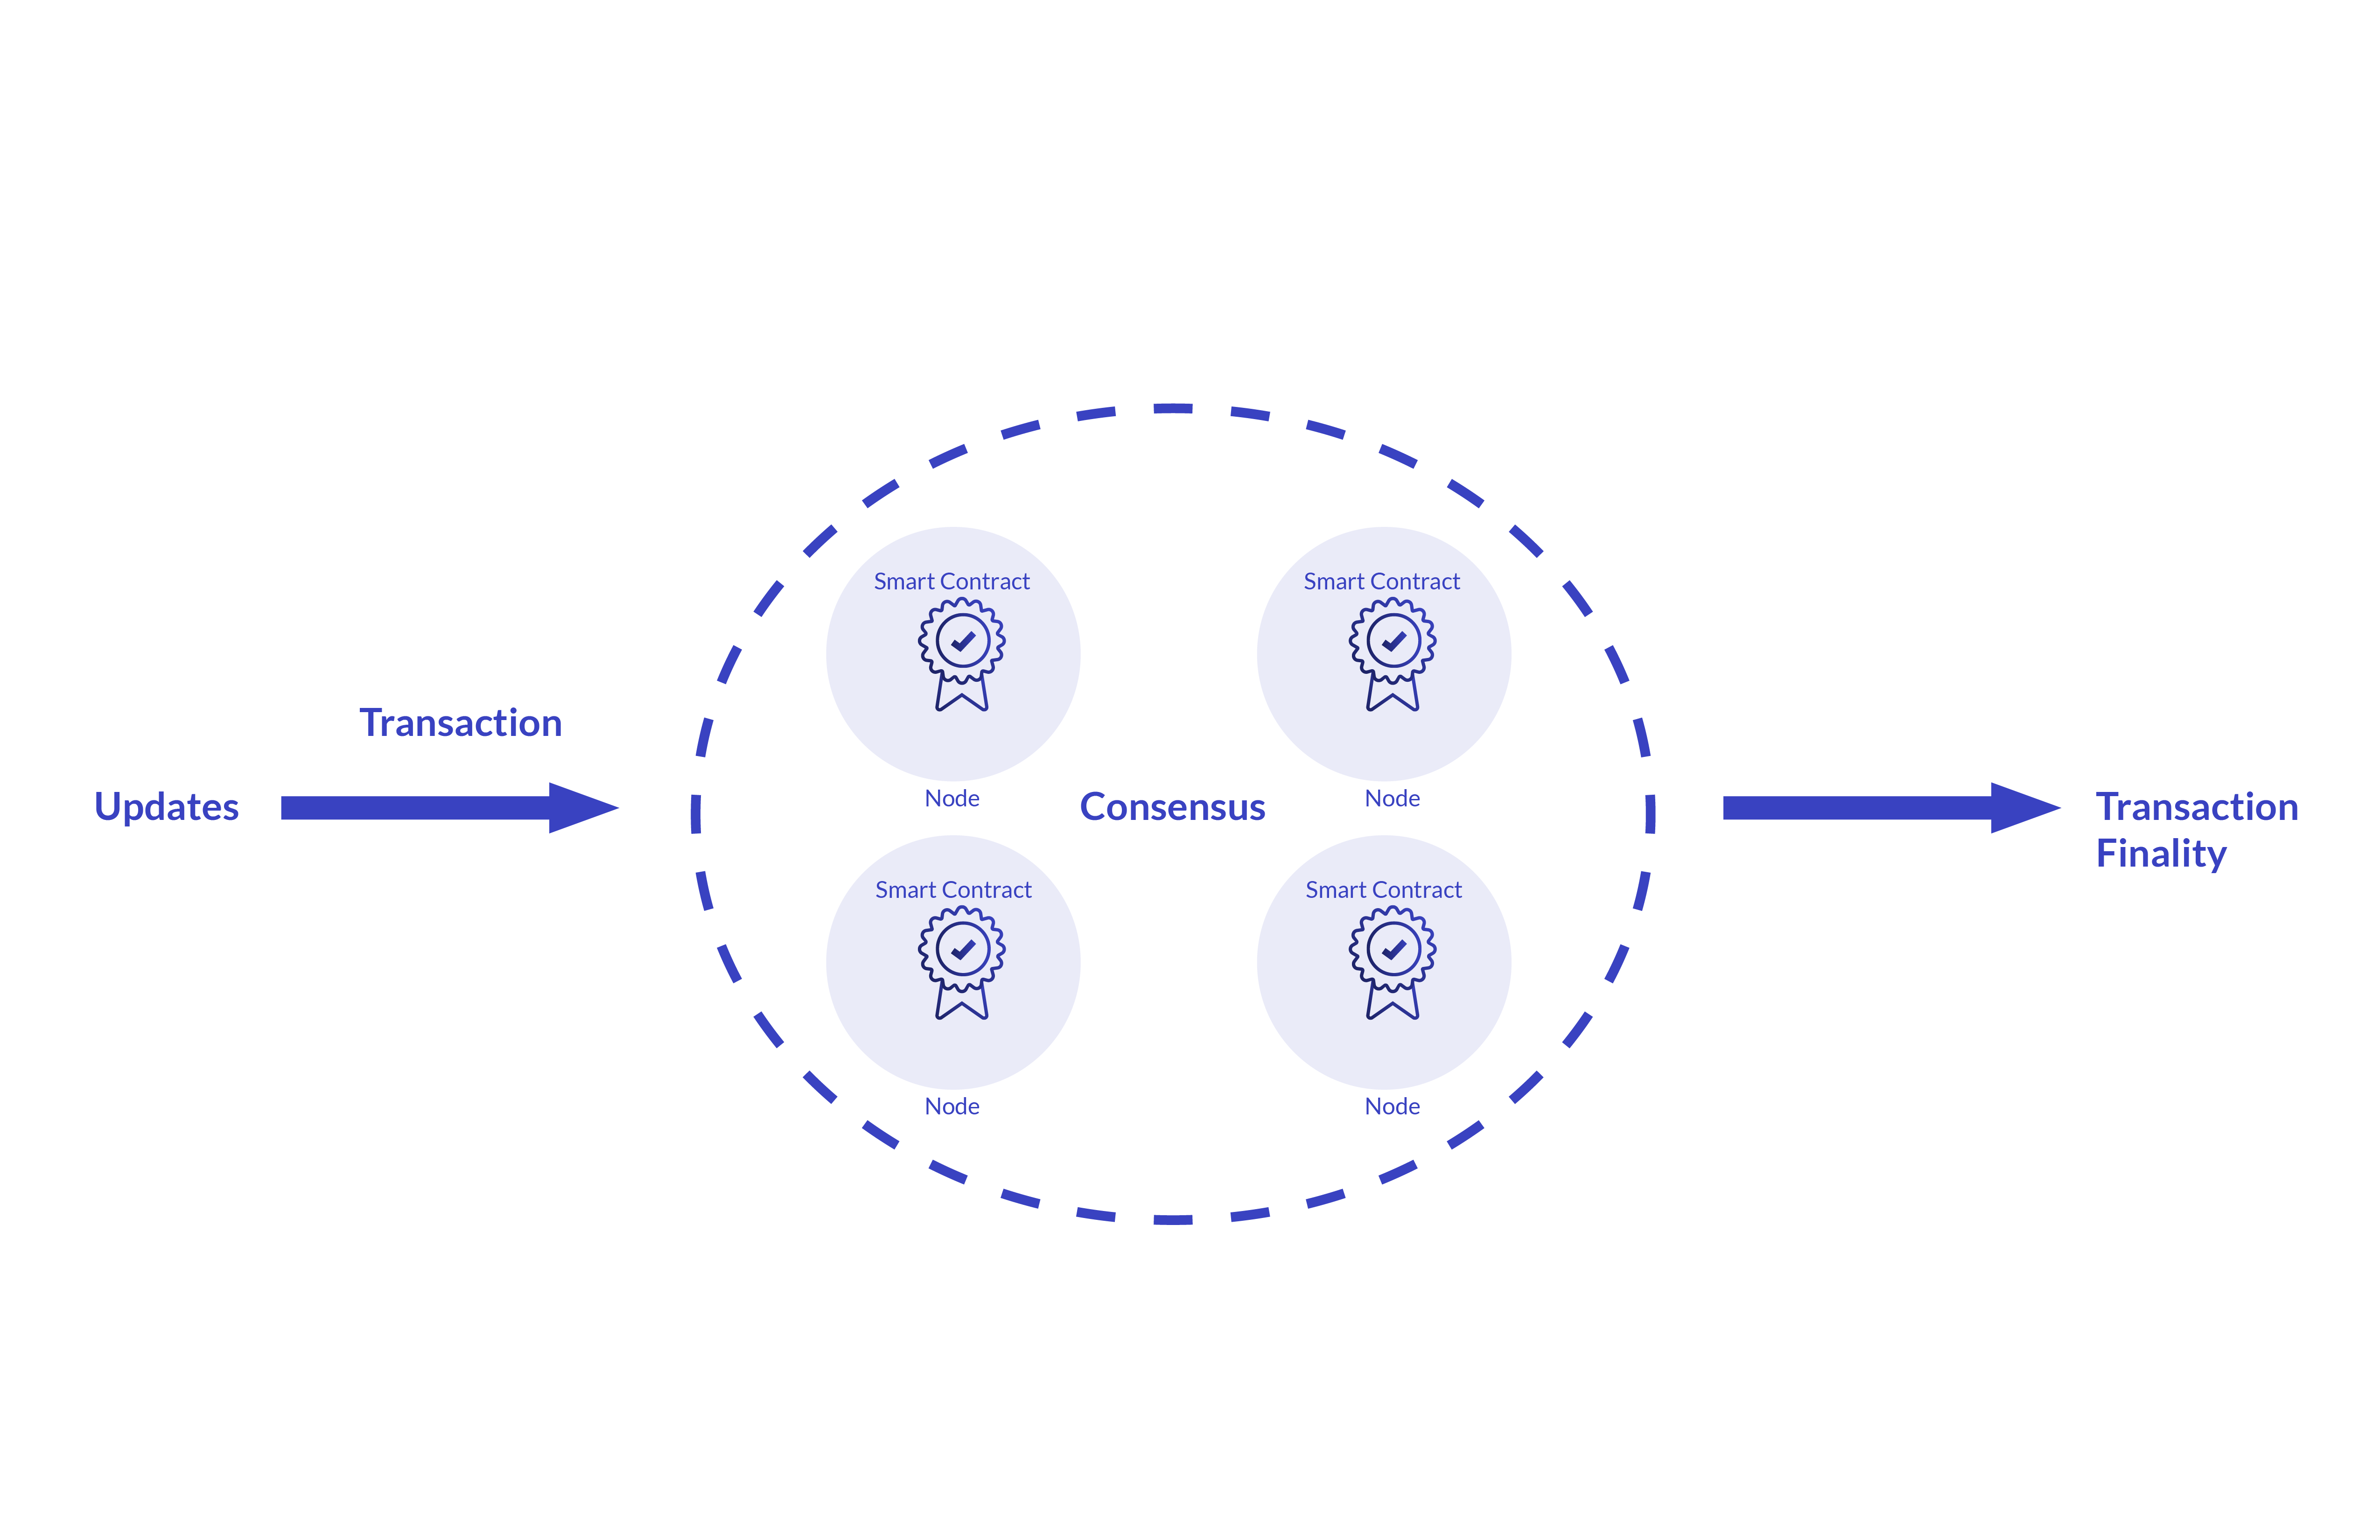 Smart contract illustration - transaction processing